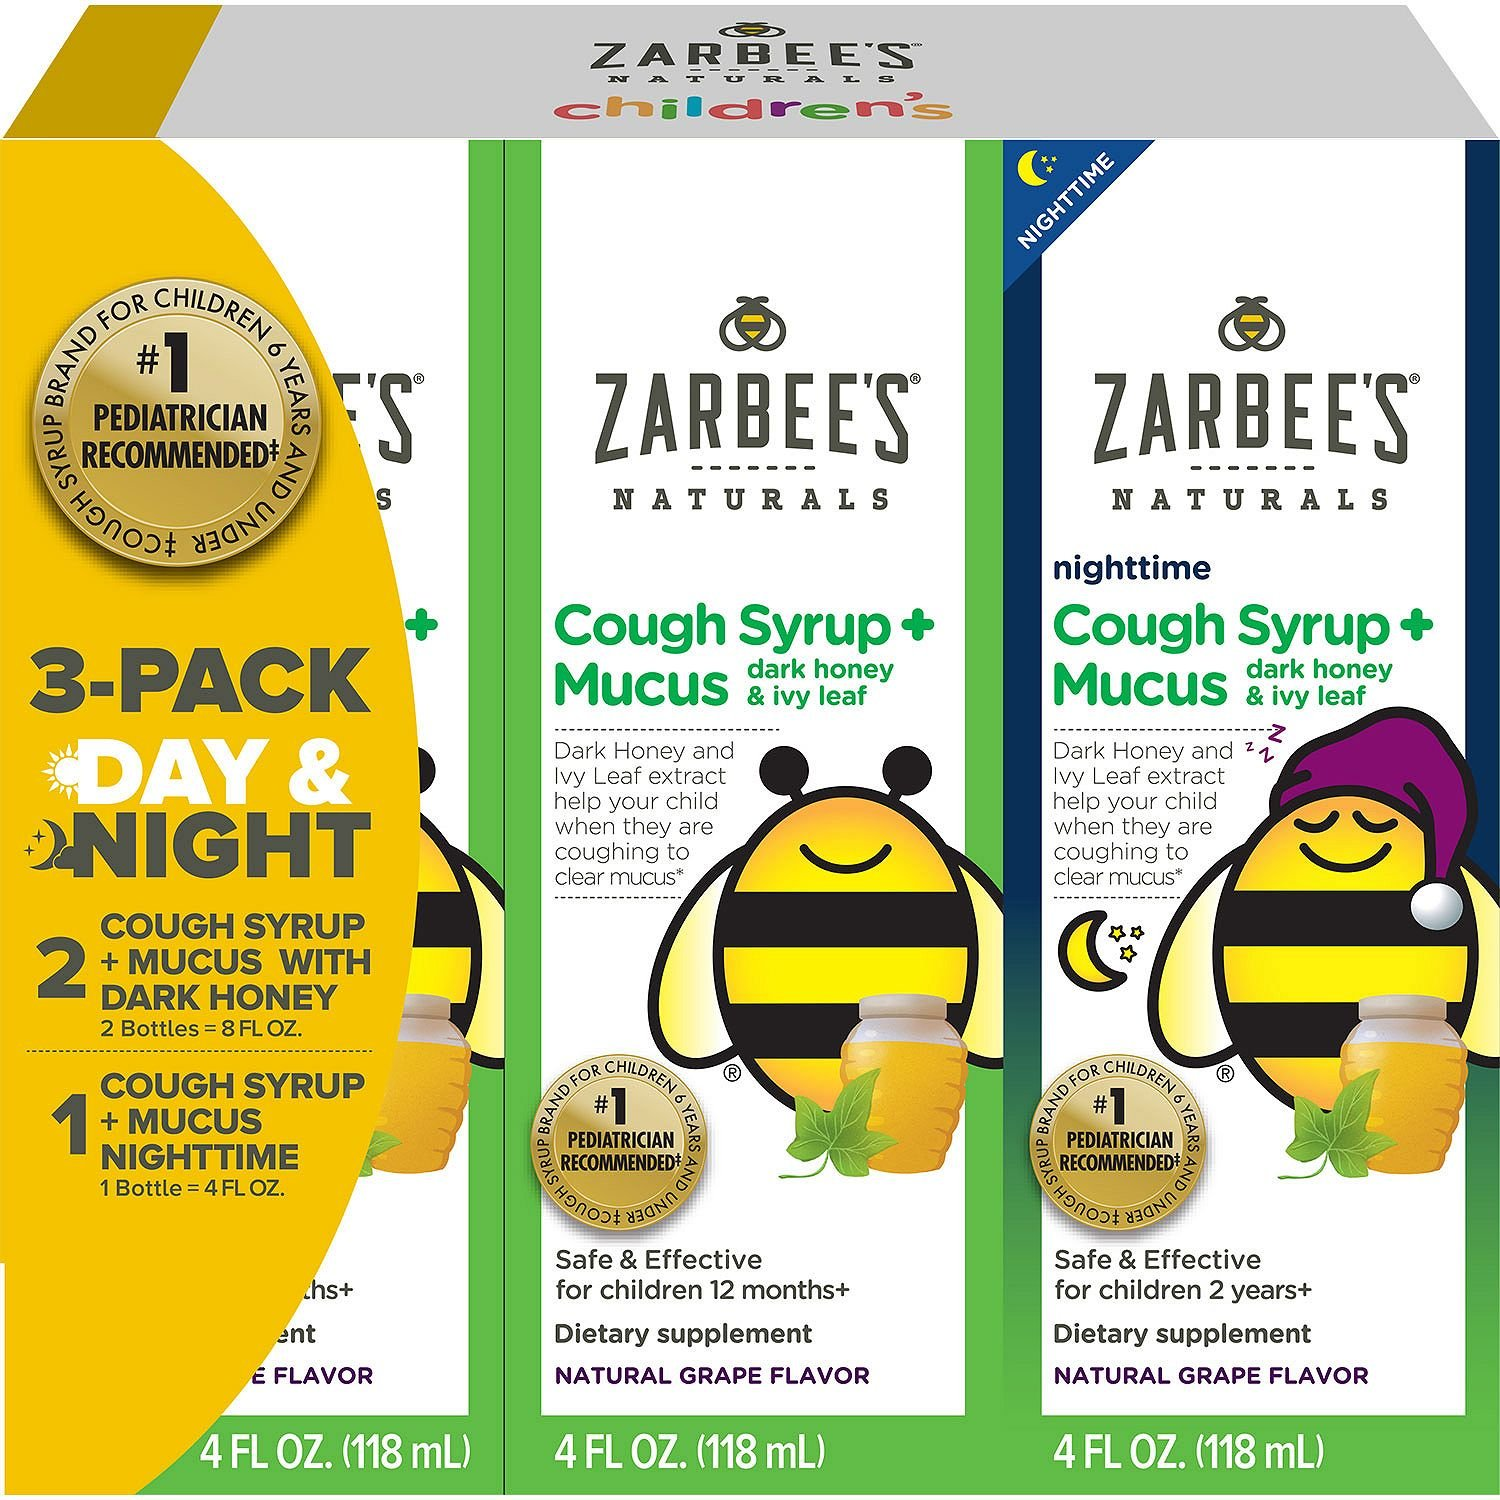 Zarbee's Natural Children's Cough Syrup + Mucus Day & Night (12 oz.) (pack of 6)